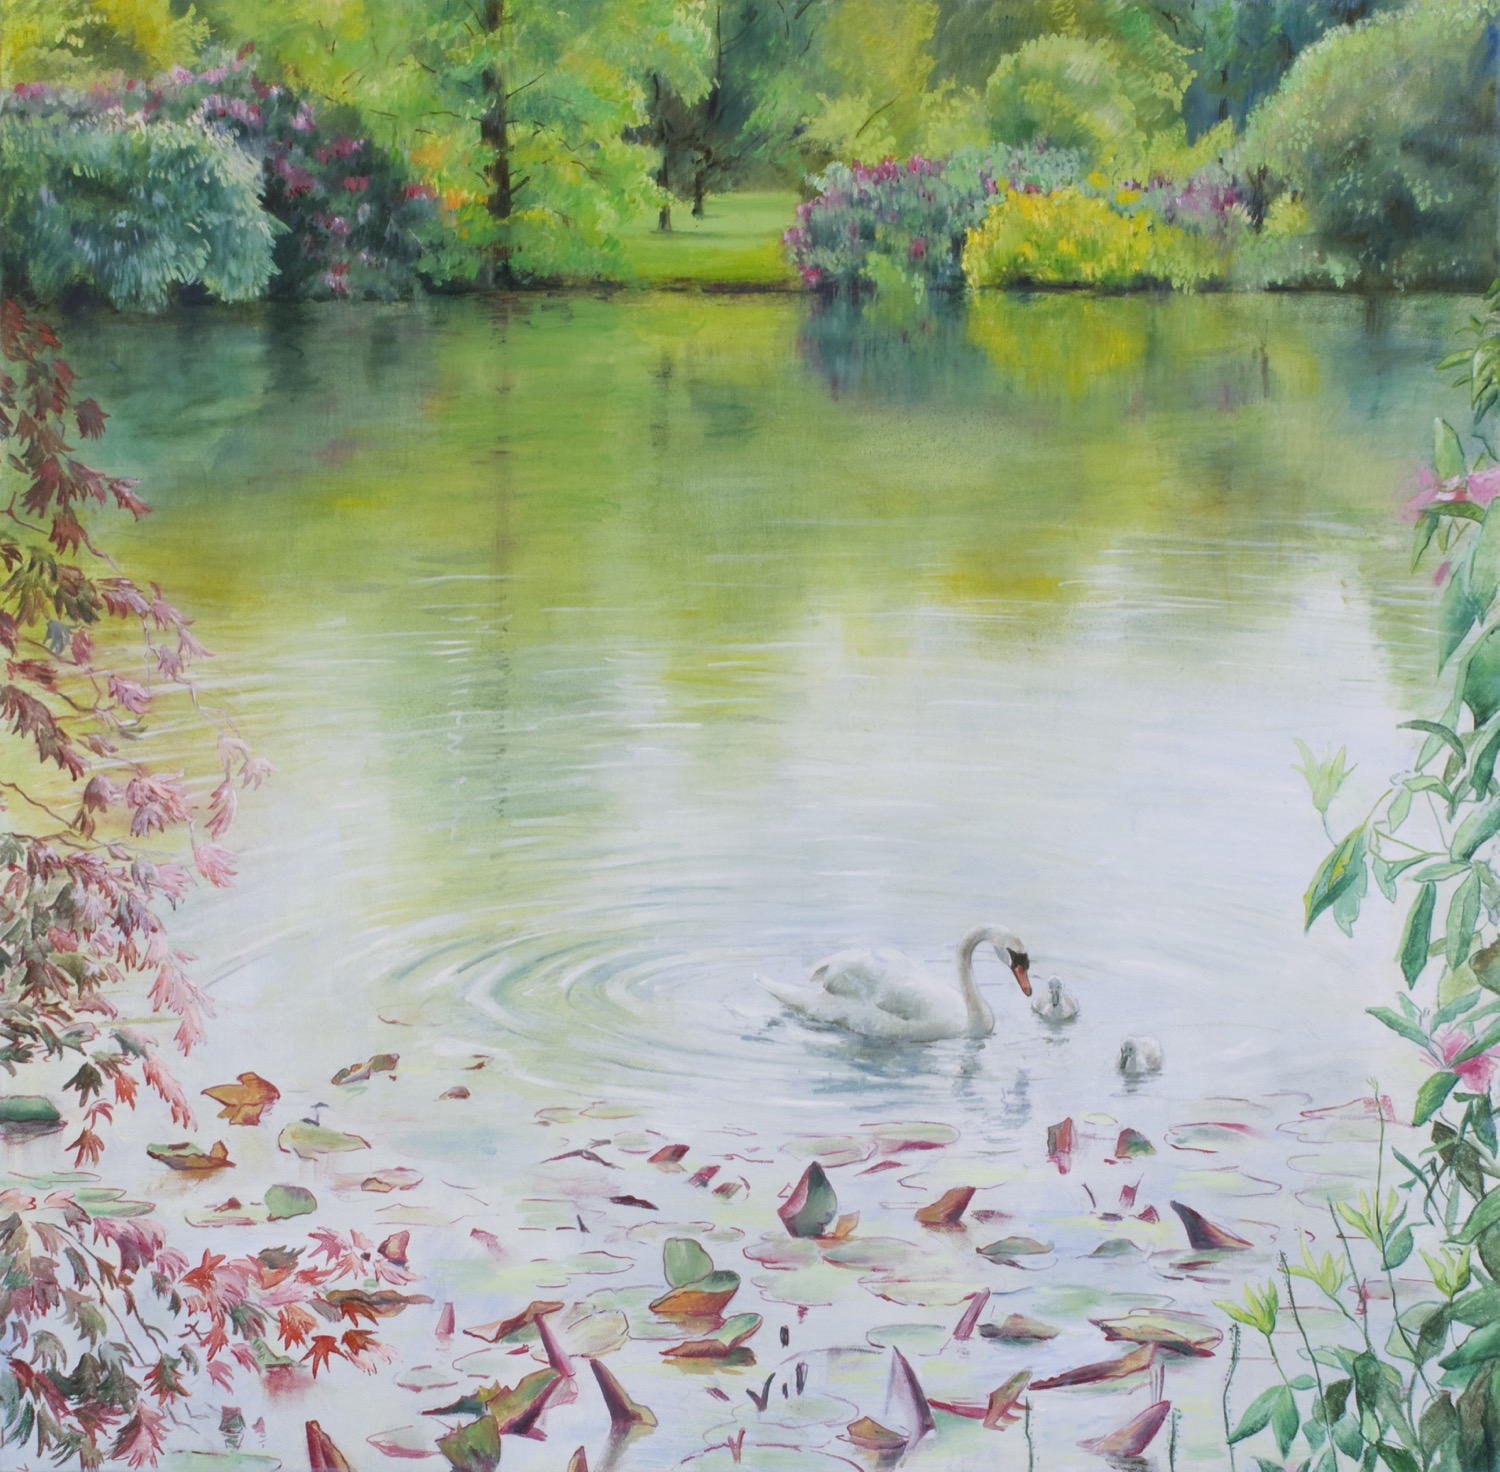 Sheffield Park, Spring: The Swimming Lesson